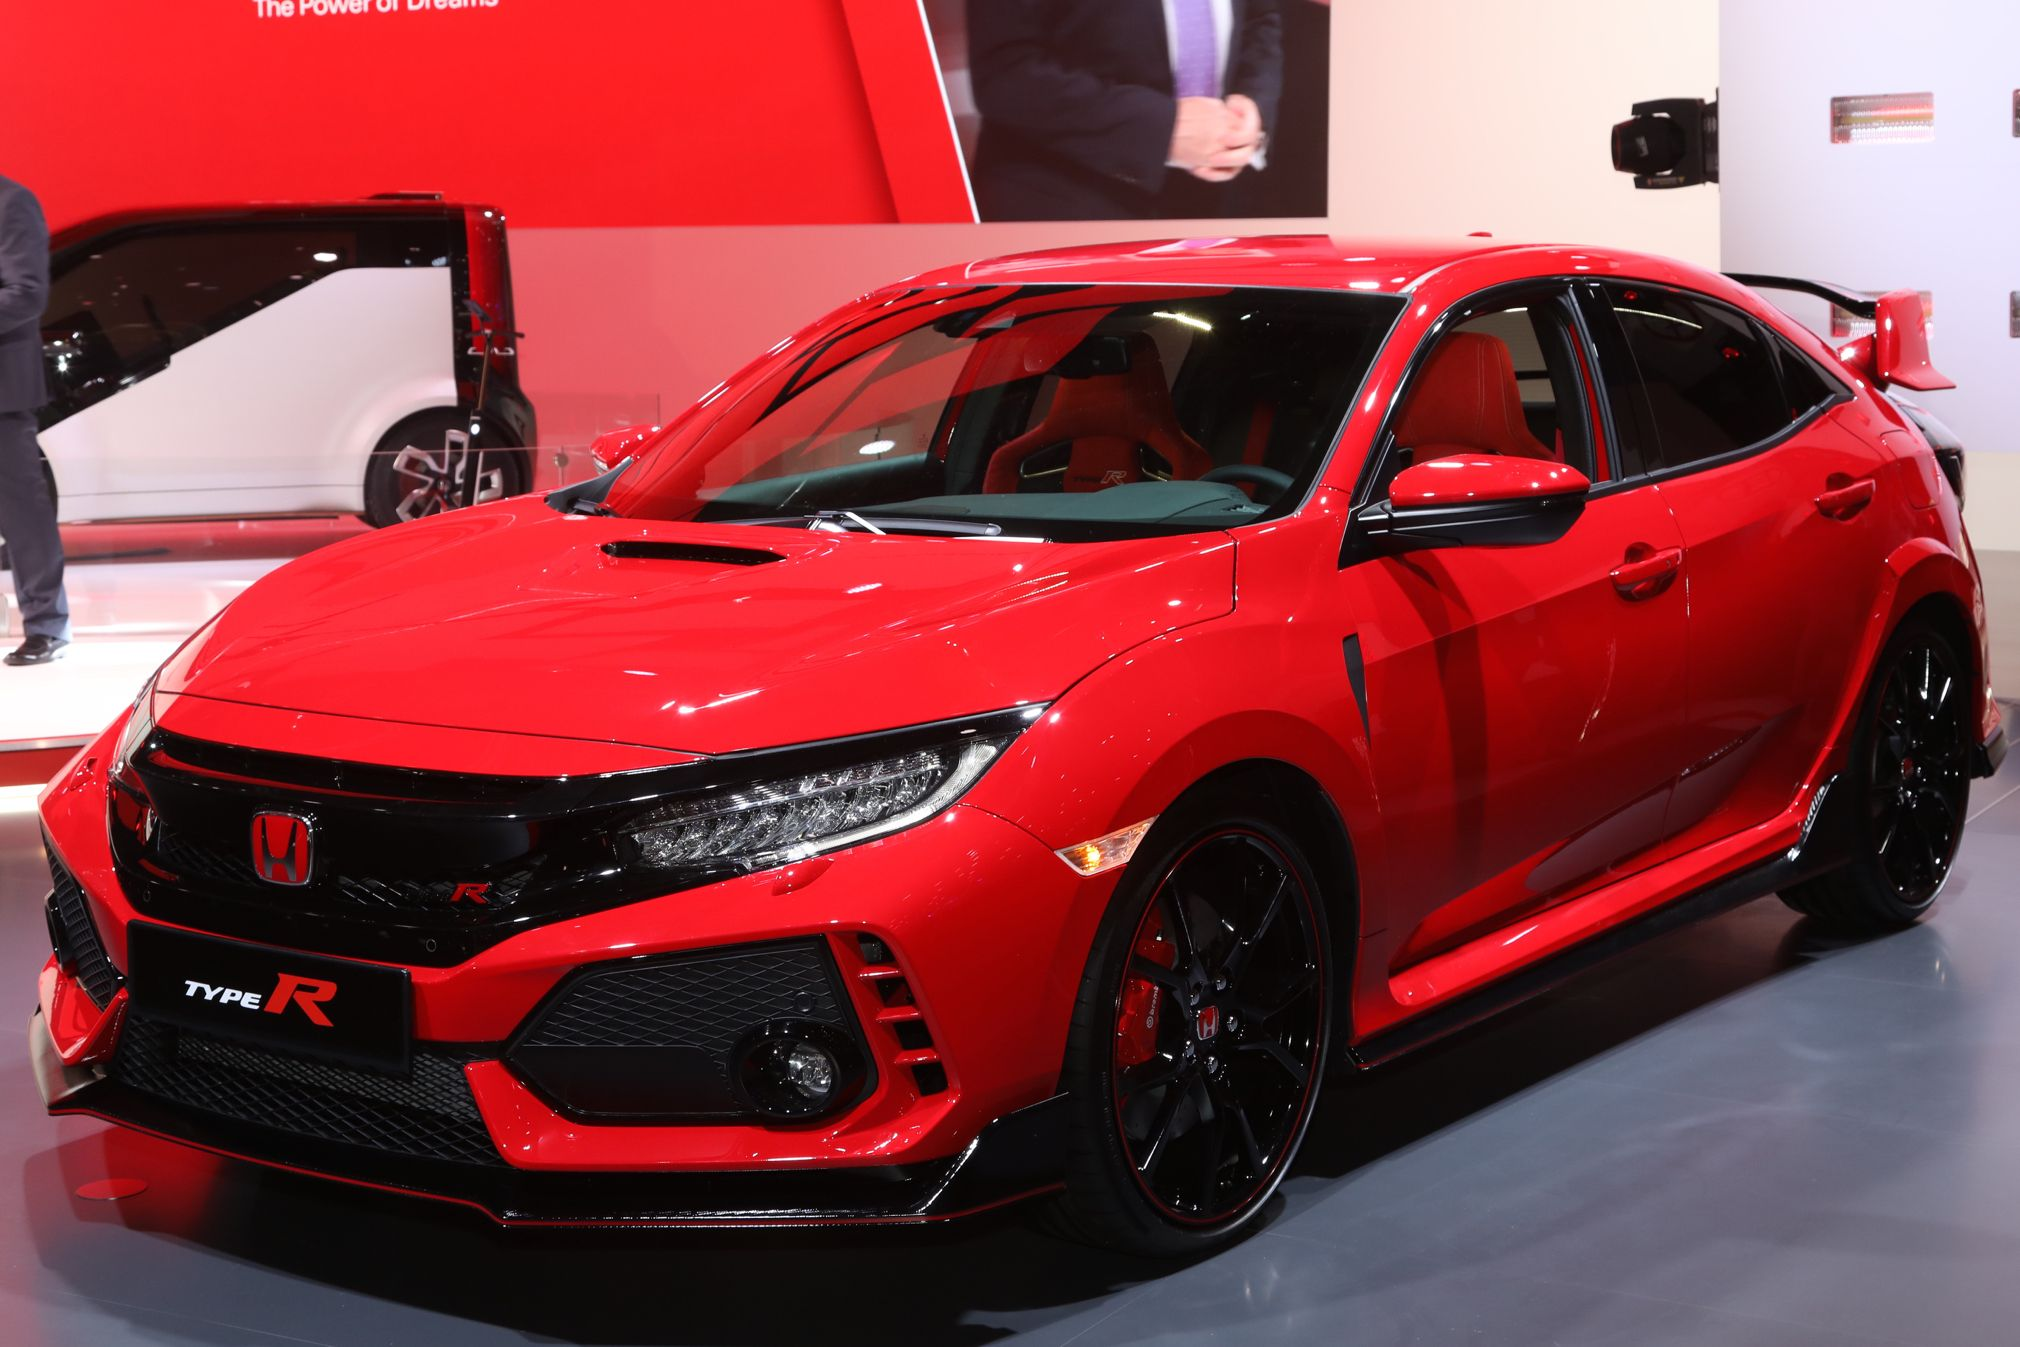 Perfect The 2017 Honda Civic Type R Is Coming To The U.S. For The First Time Later